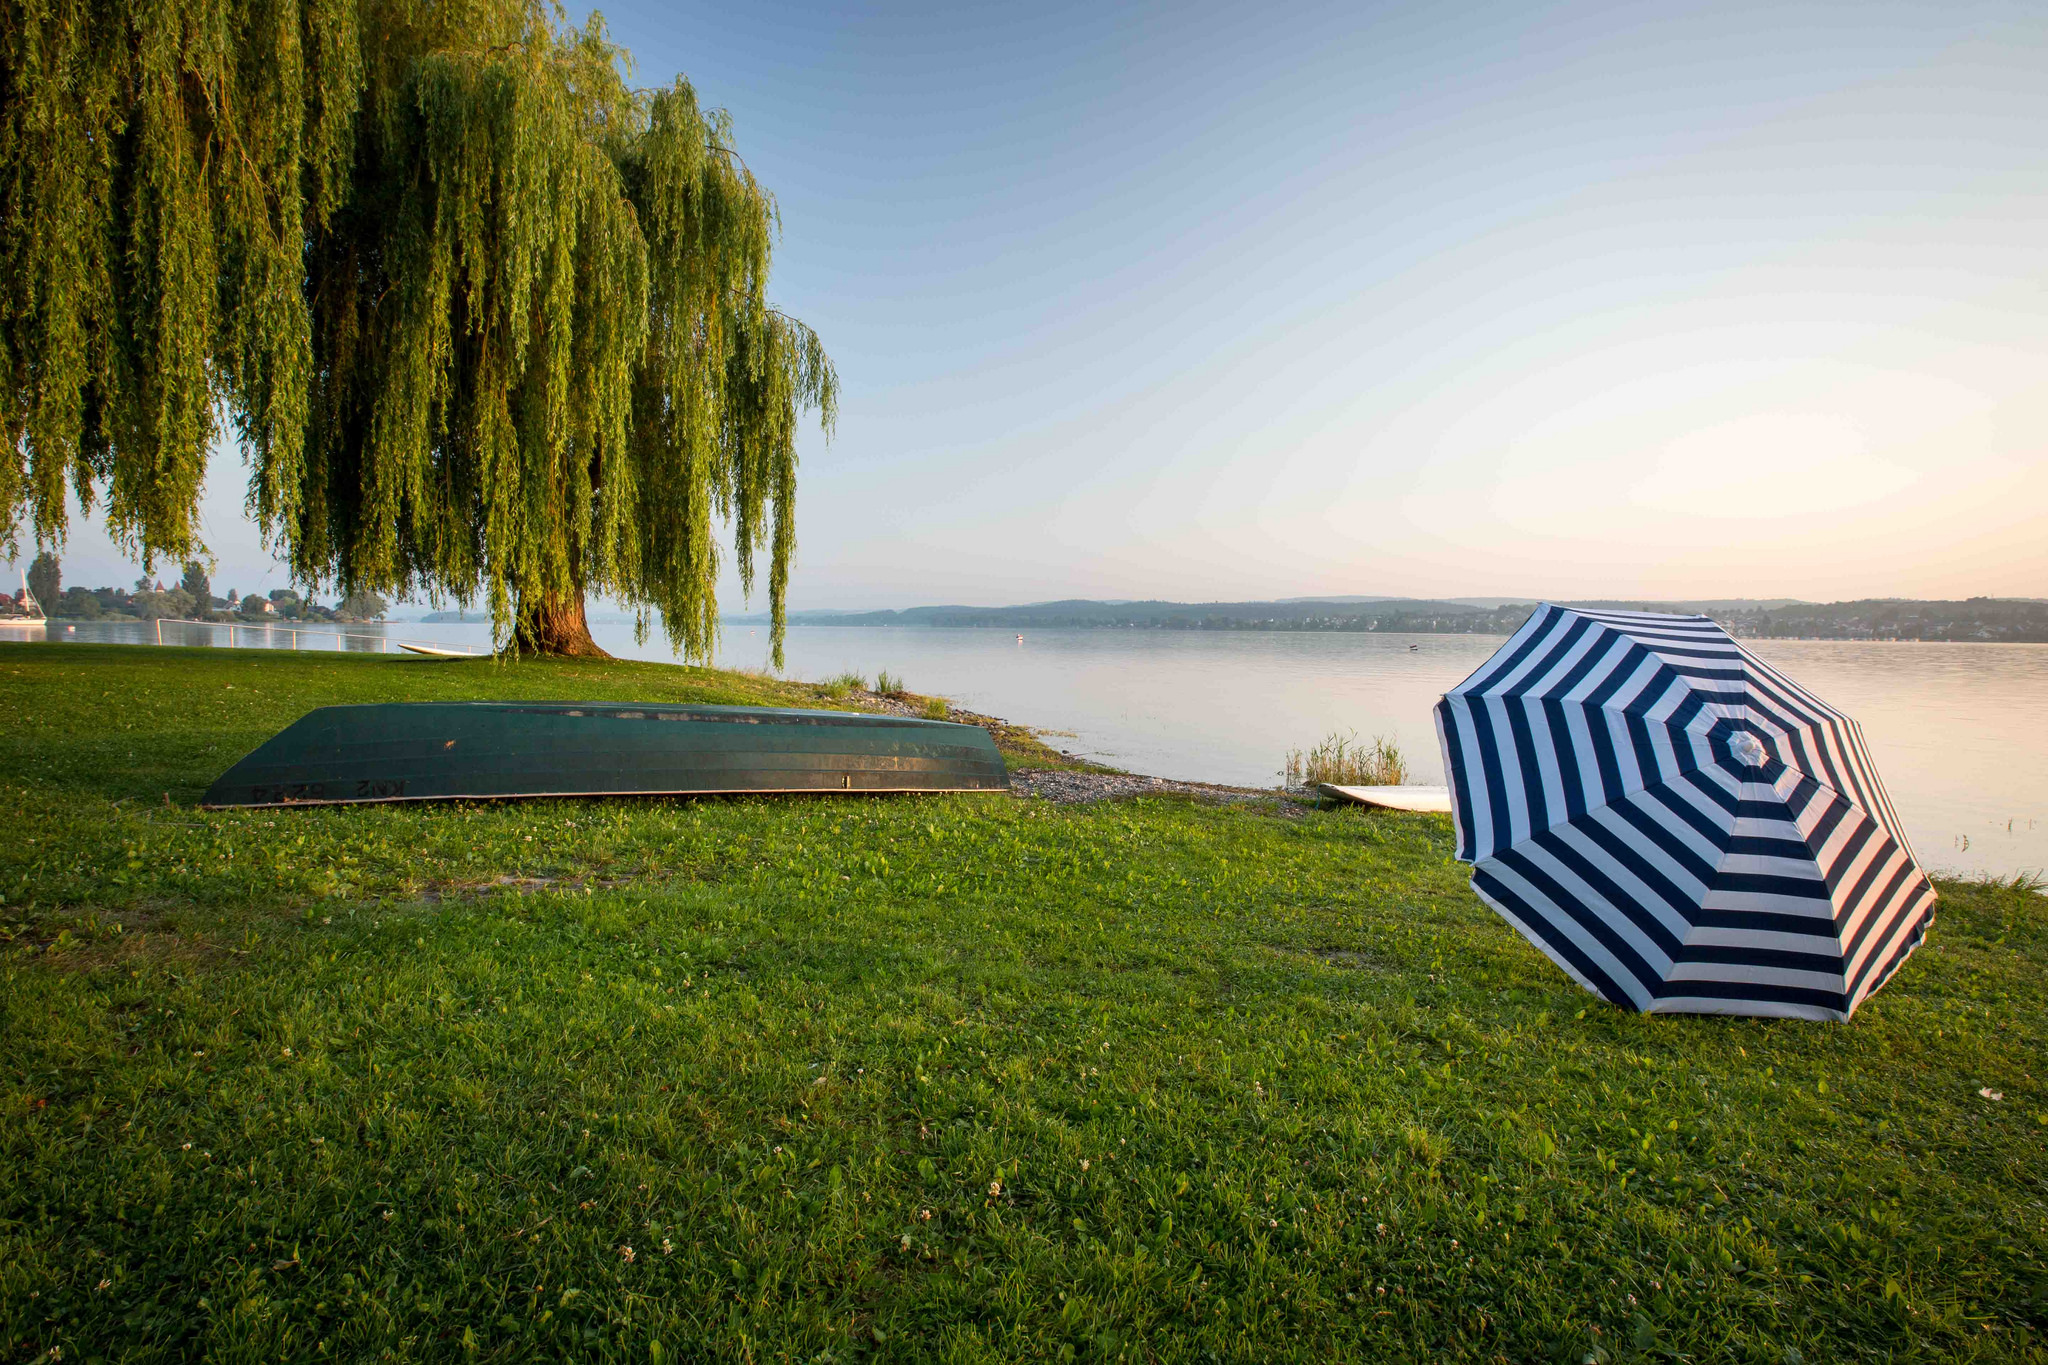 Bodensee fkk am Camping Bodensee: